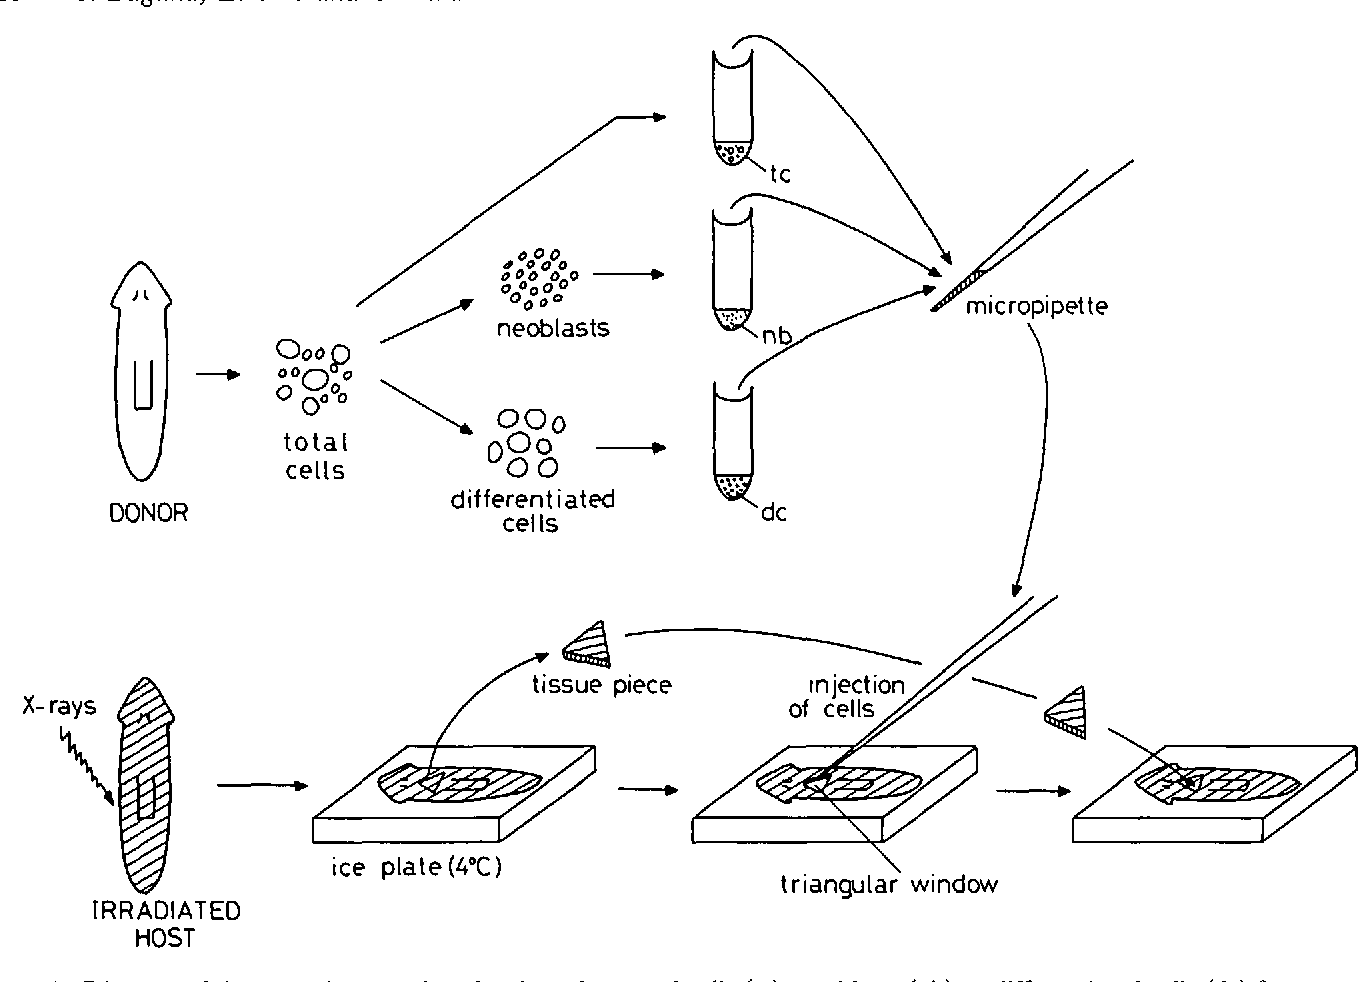 Figure 2 from regeneration and pattern formation in planarians iii figure 2 ccuart Images